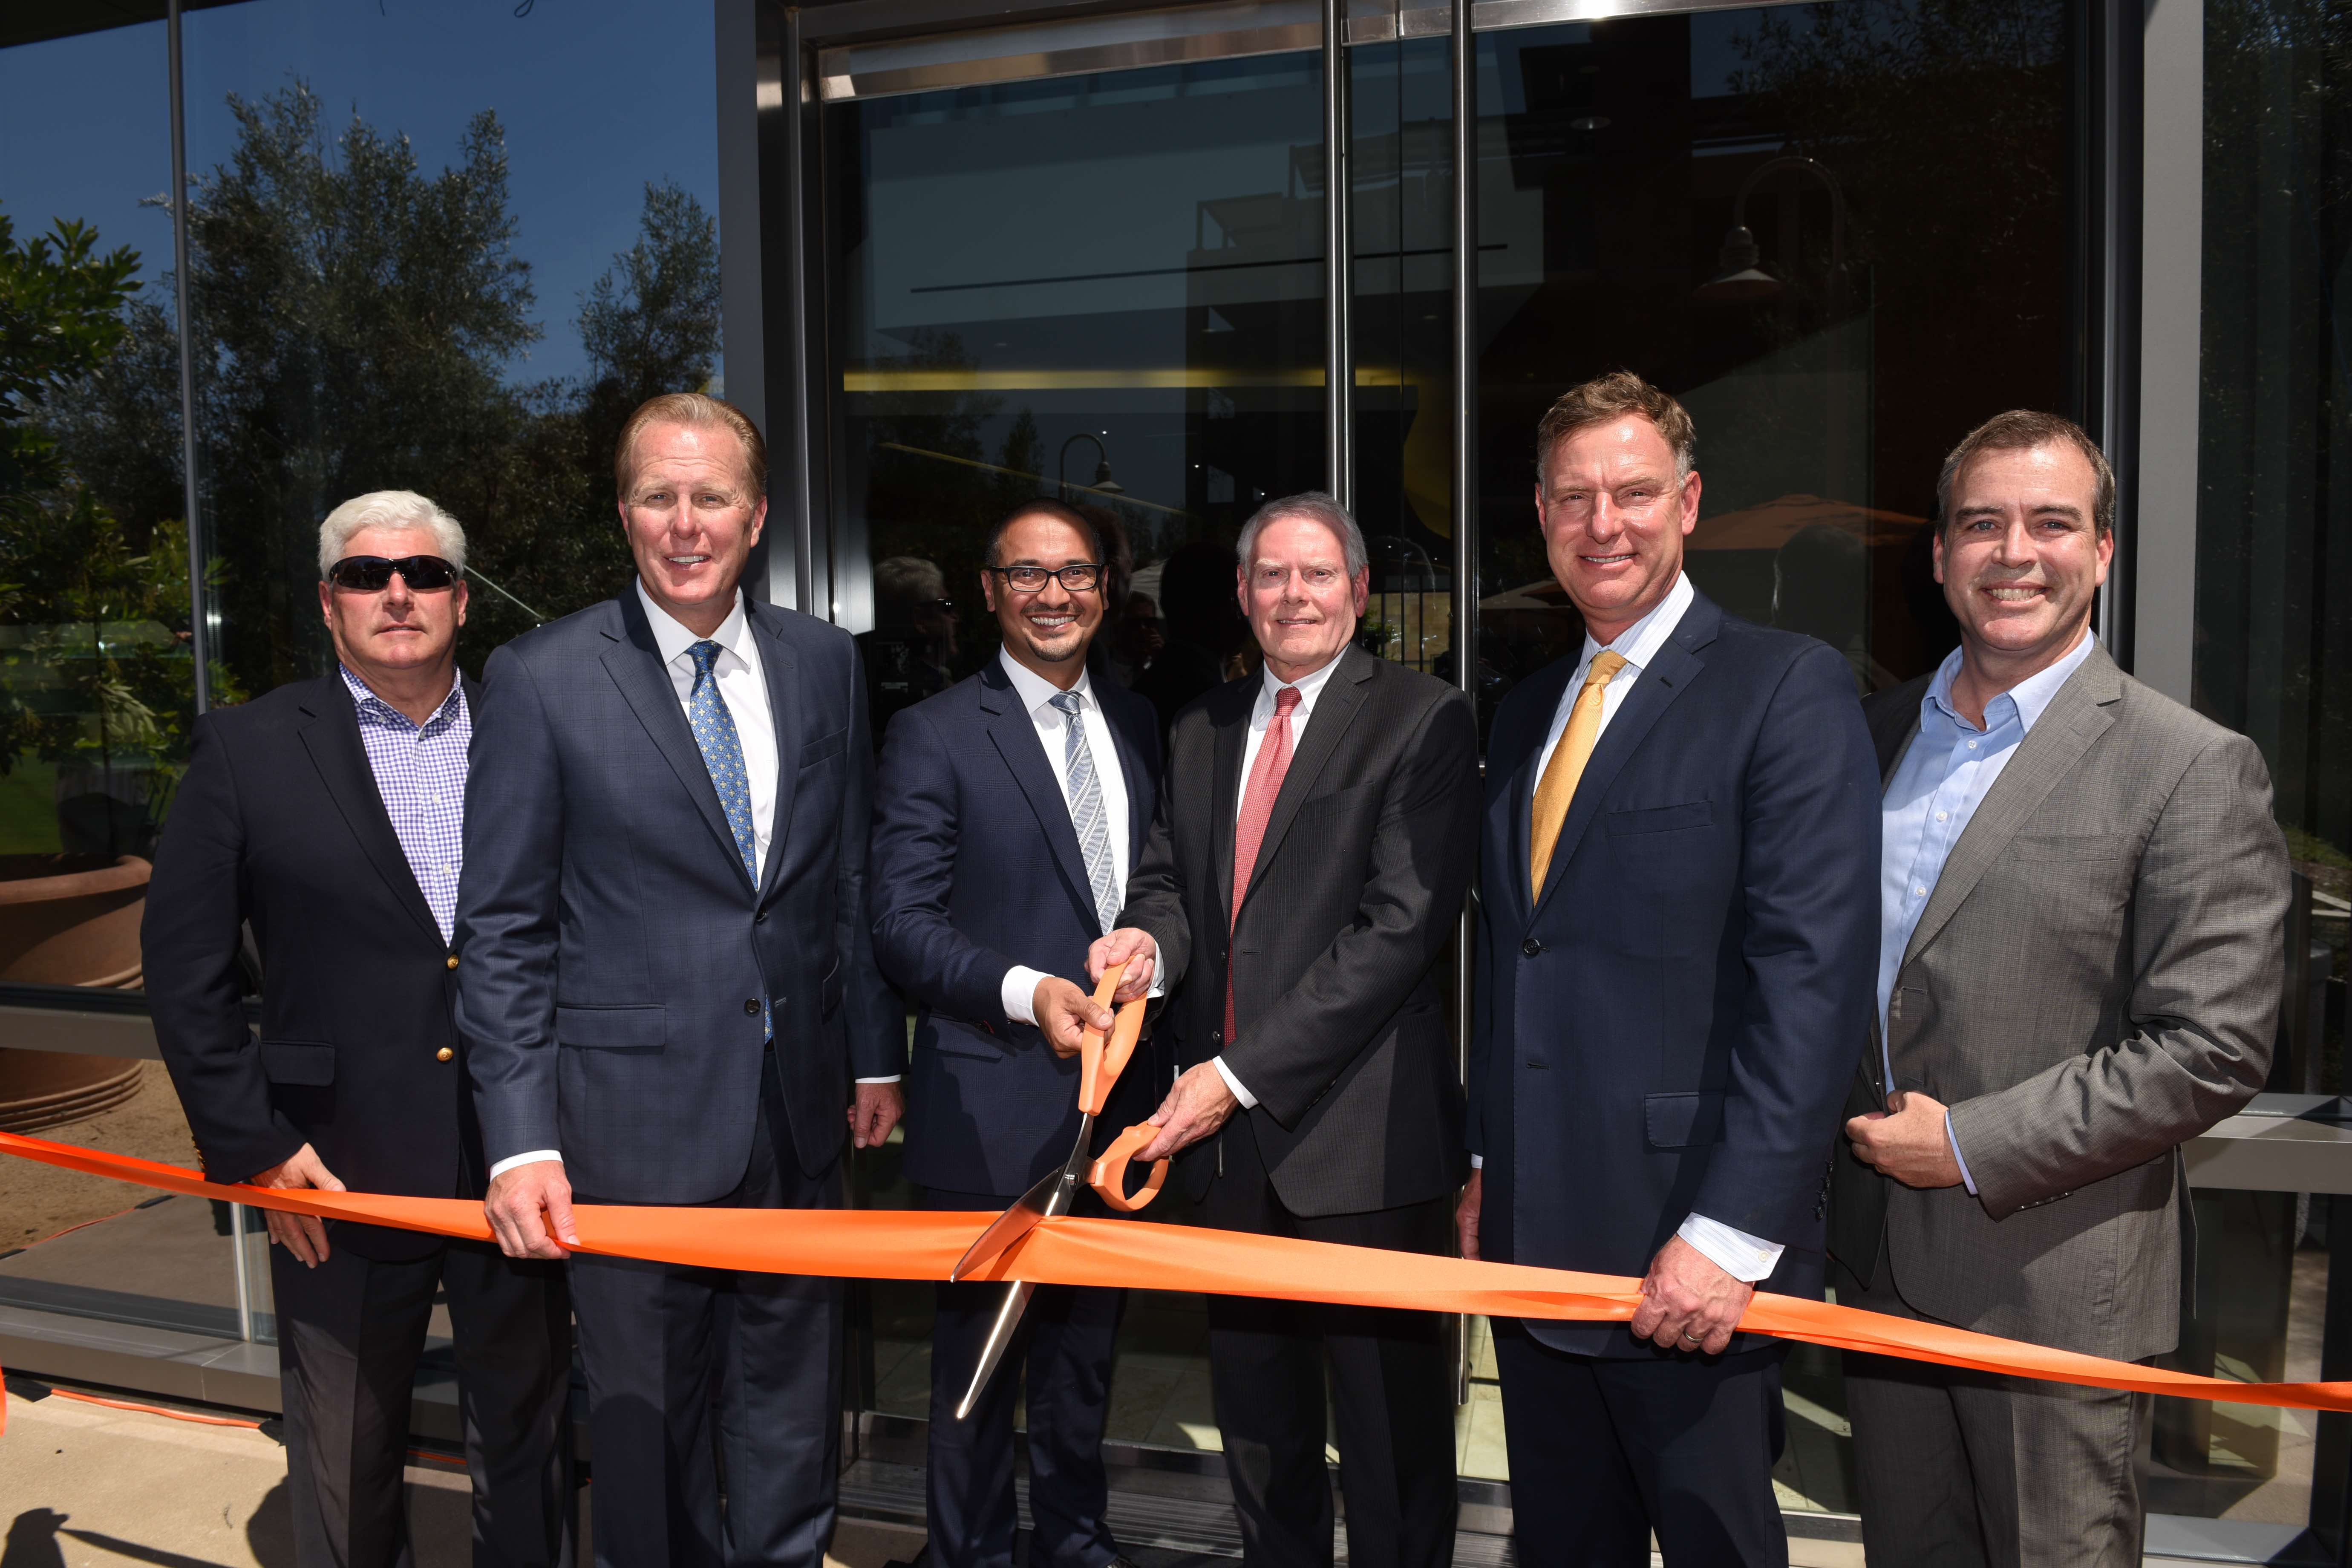 Illumina Dedicates Jay T. Flatley Innovation Center